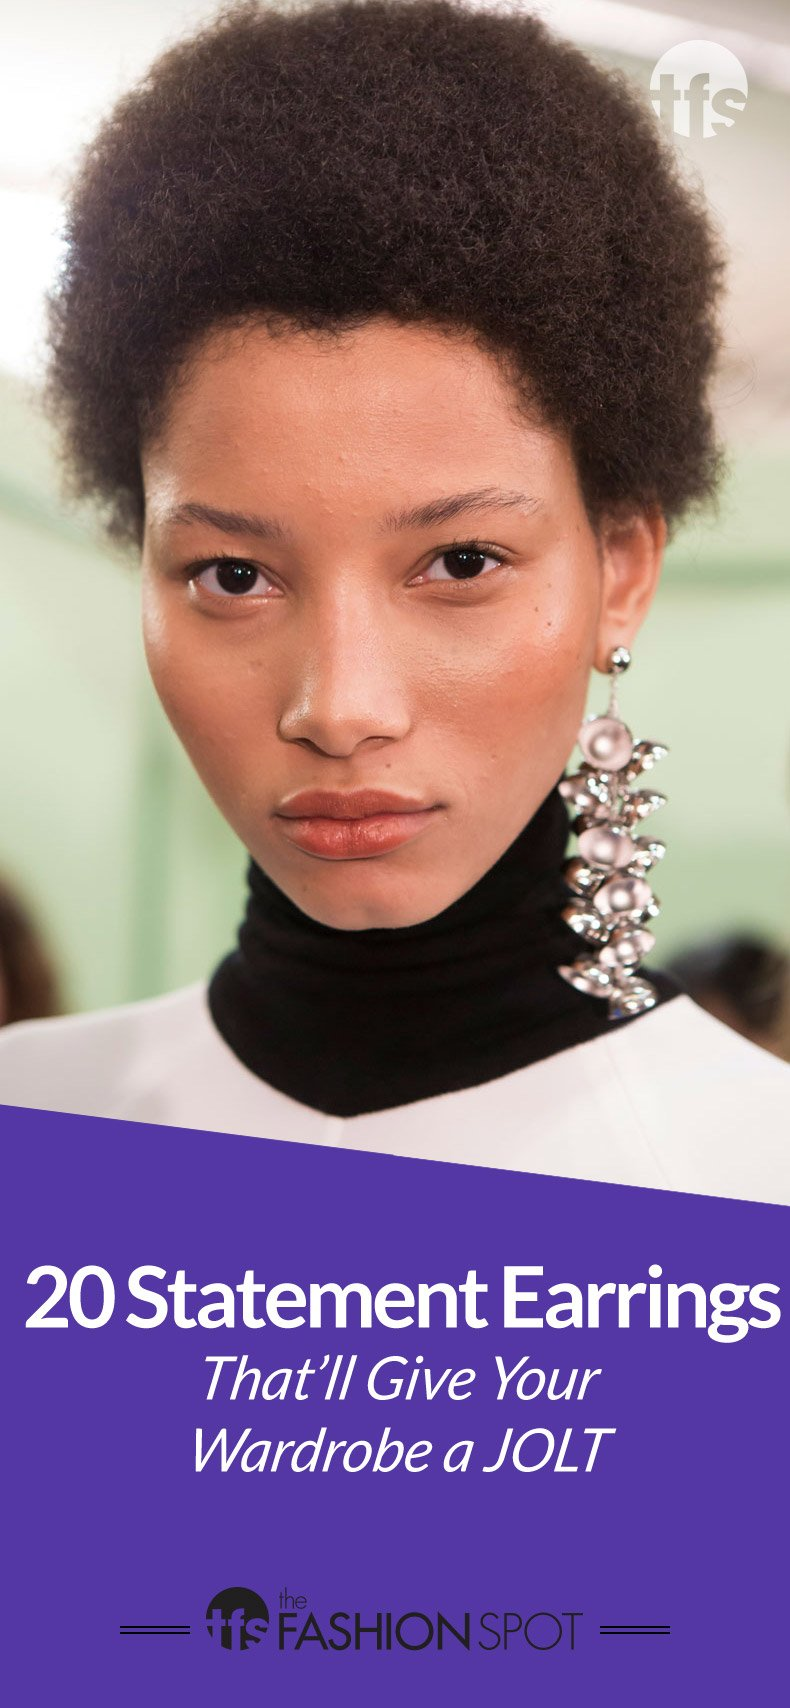 20 Artsy Statement Earrings That'll Give Your Wardrobe a Jolt